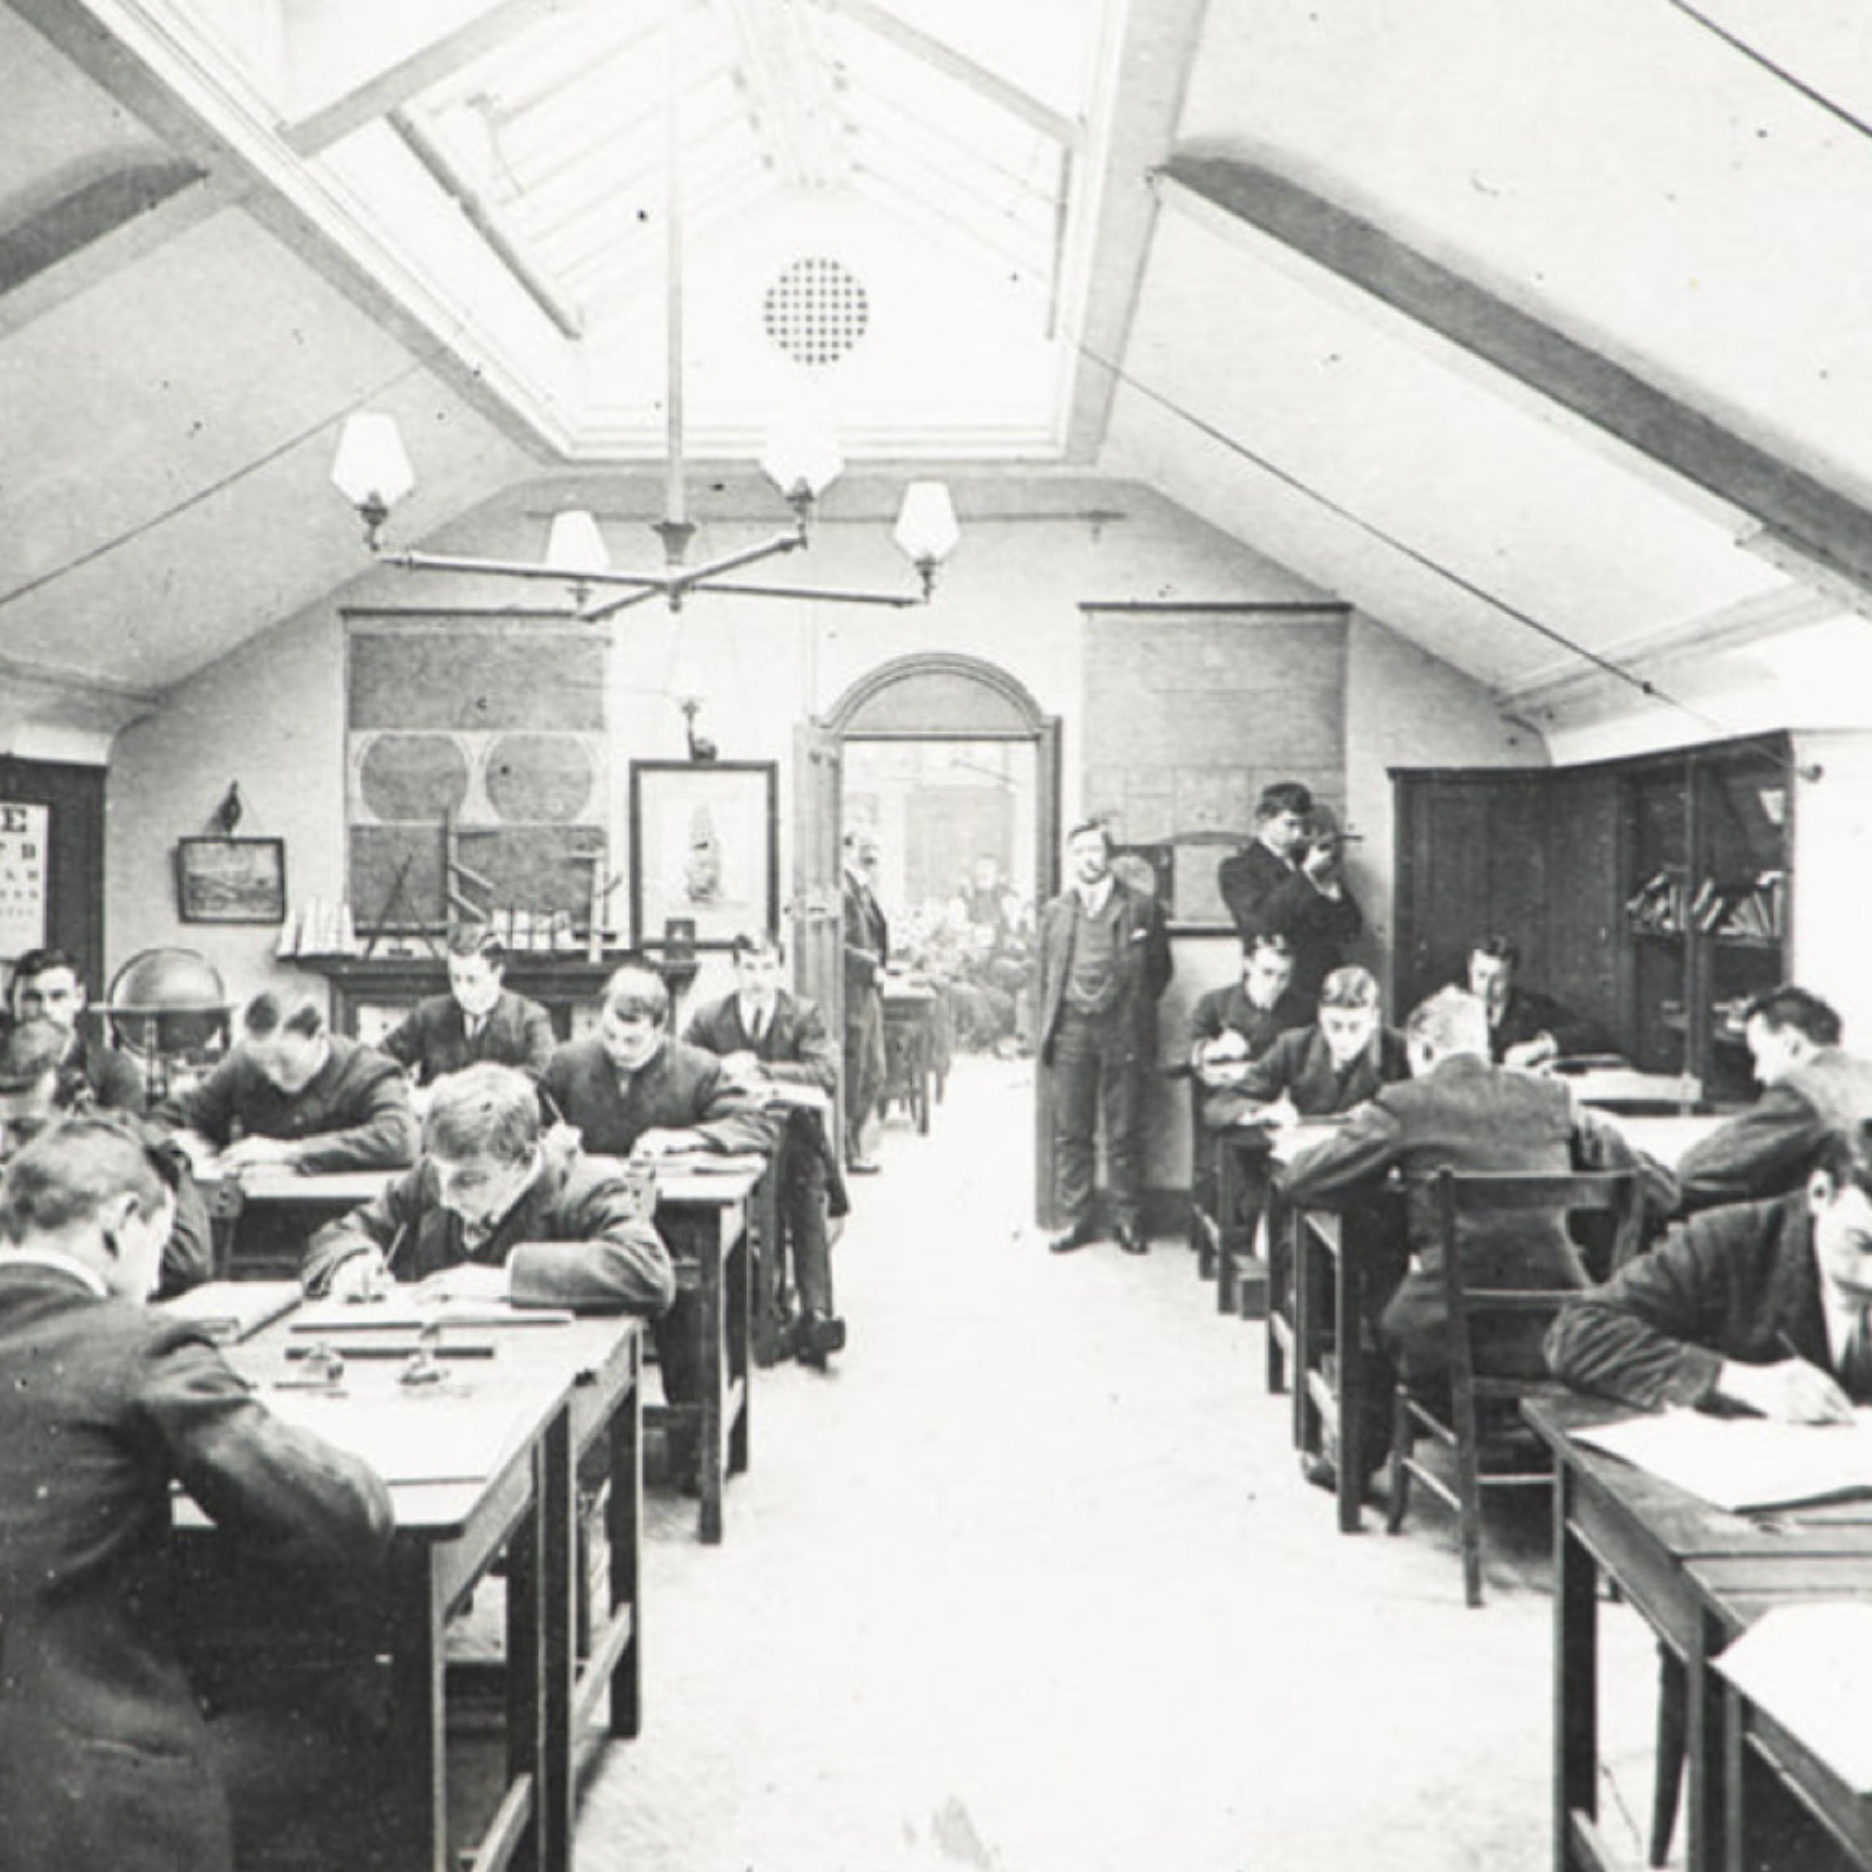 Nautical School classroom in the early 1900's - 7606.1